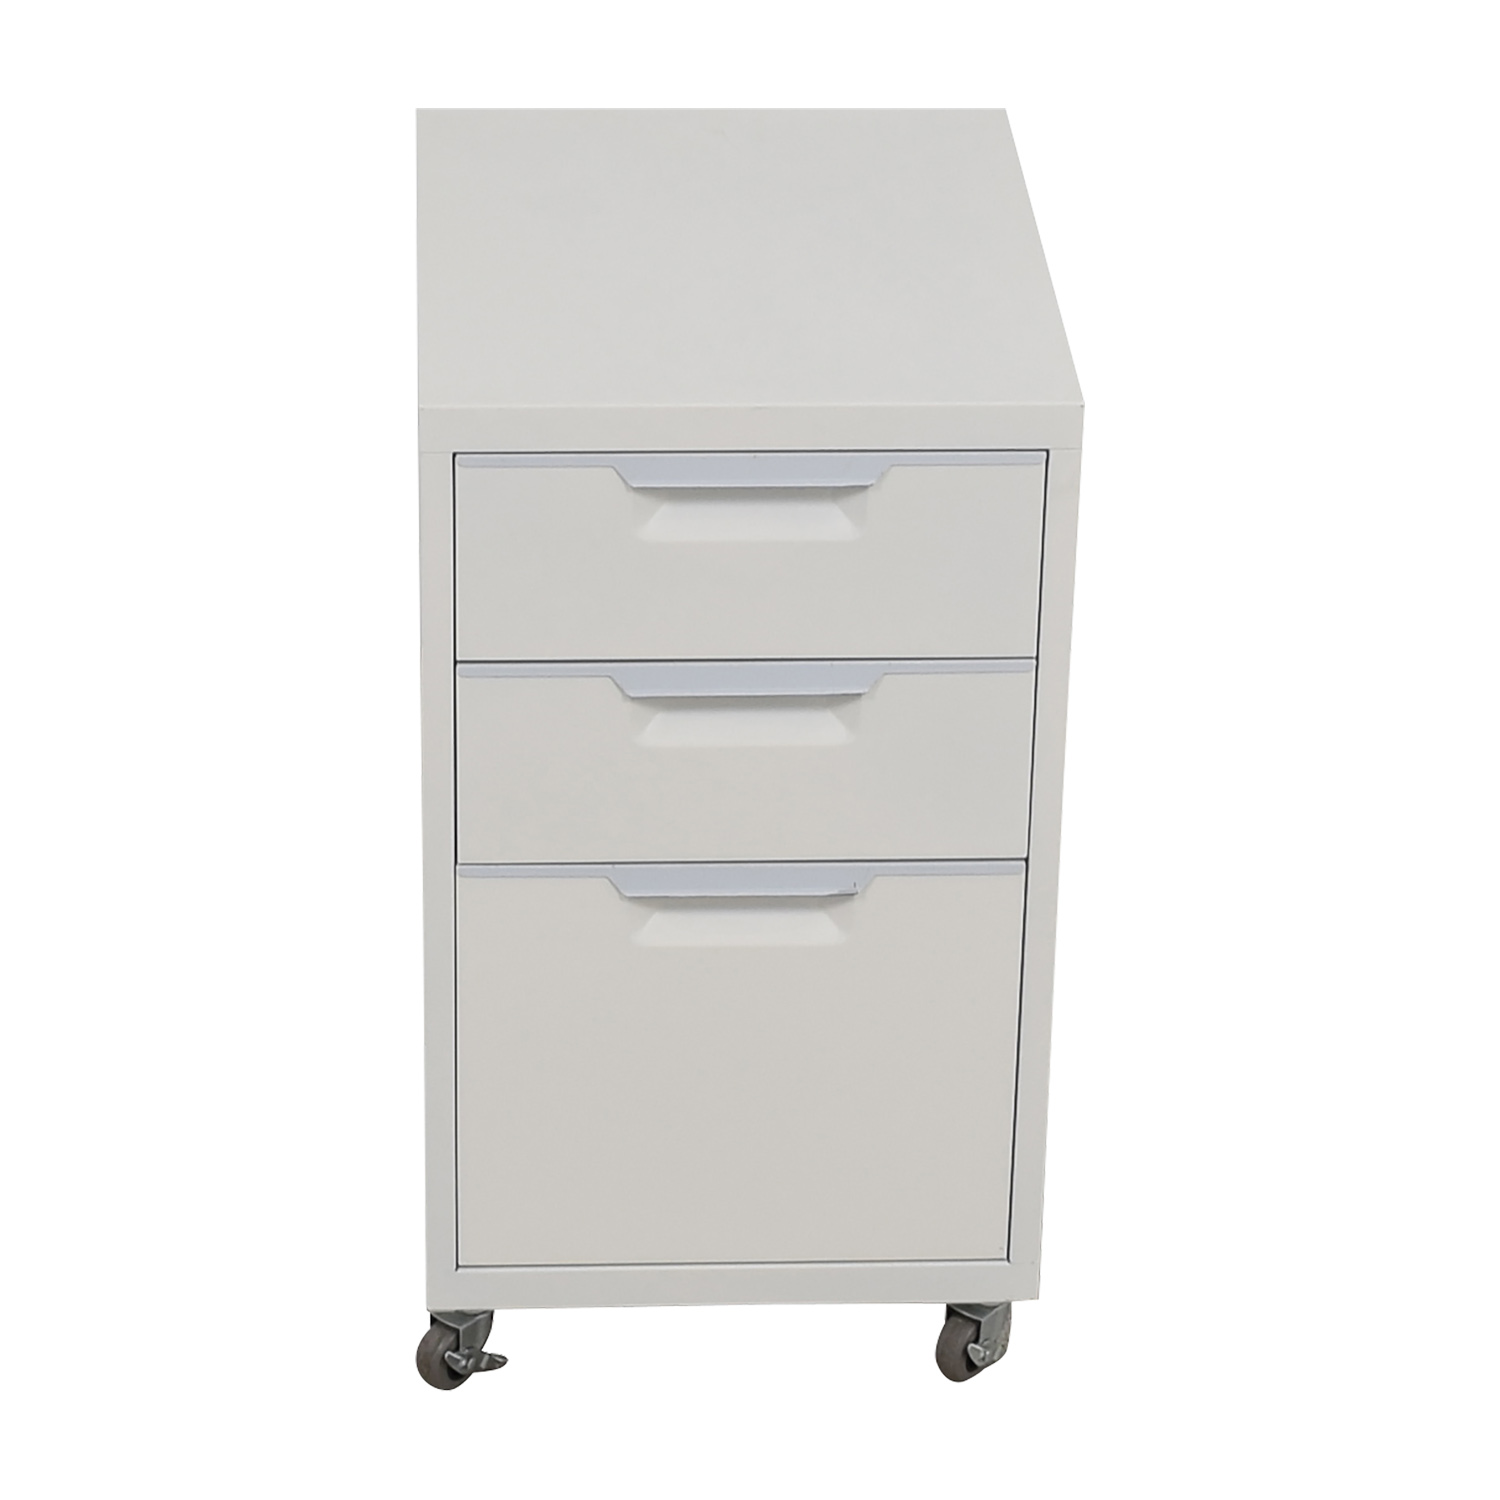 CB2 CB2 White File Cabinet coupon